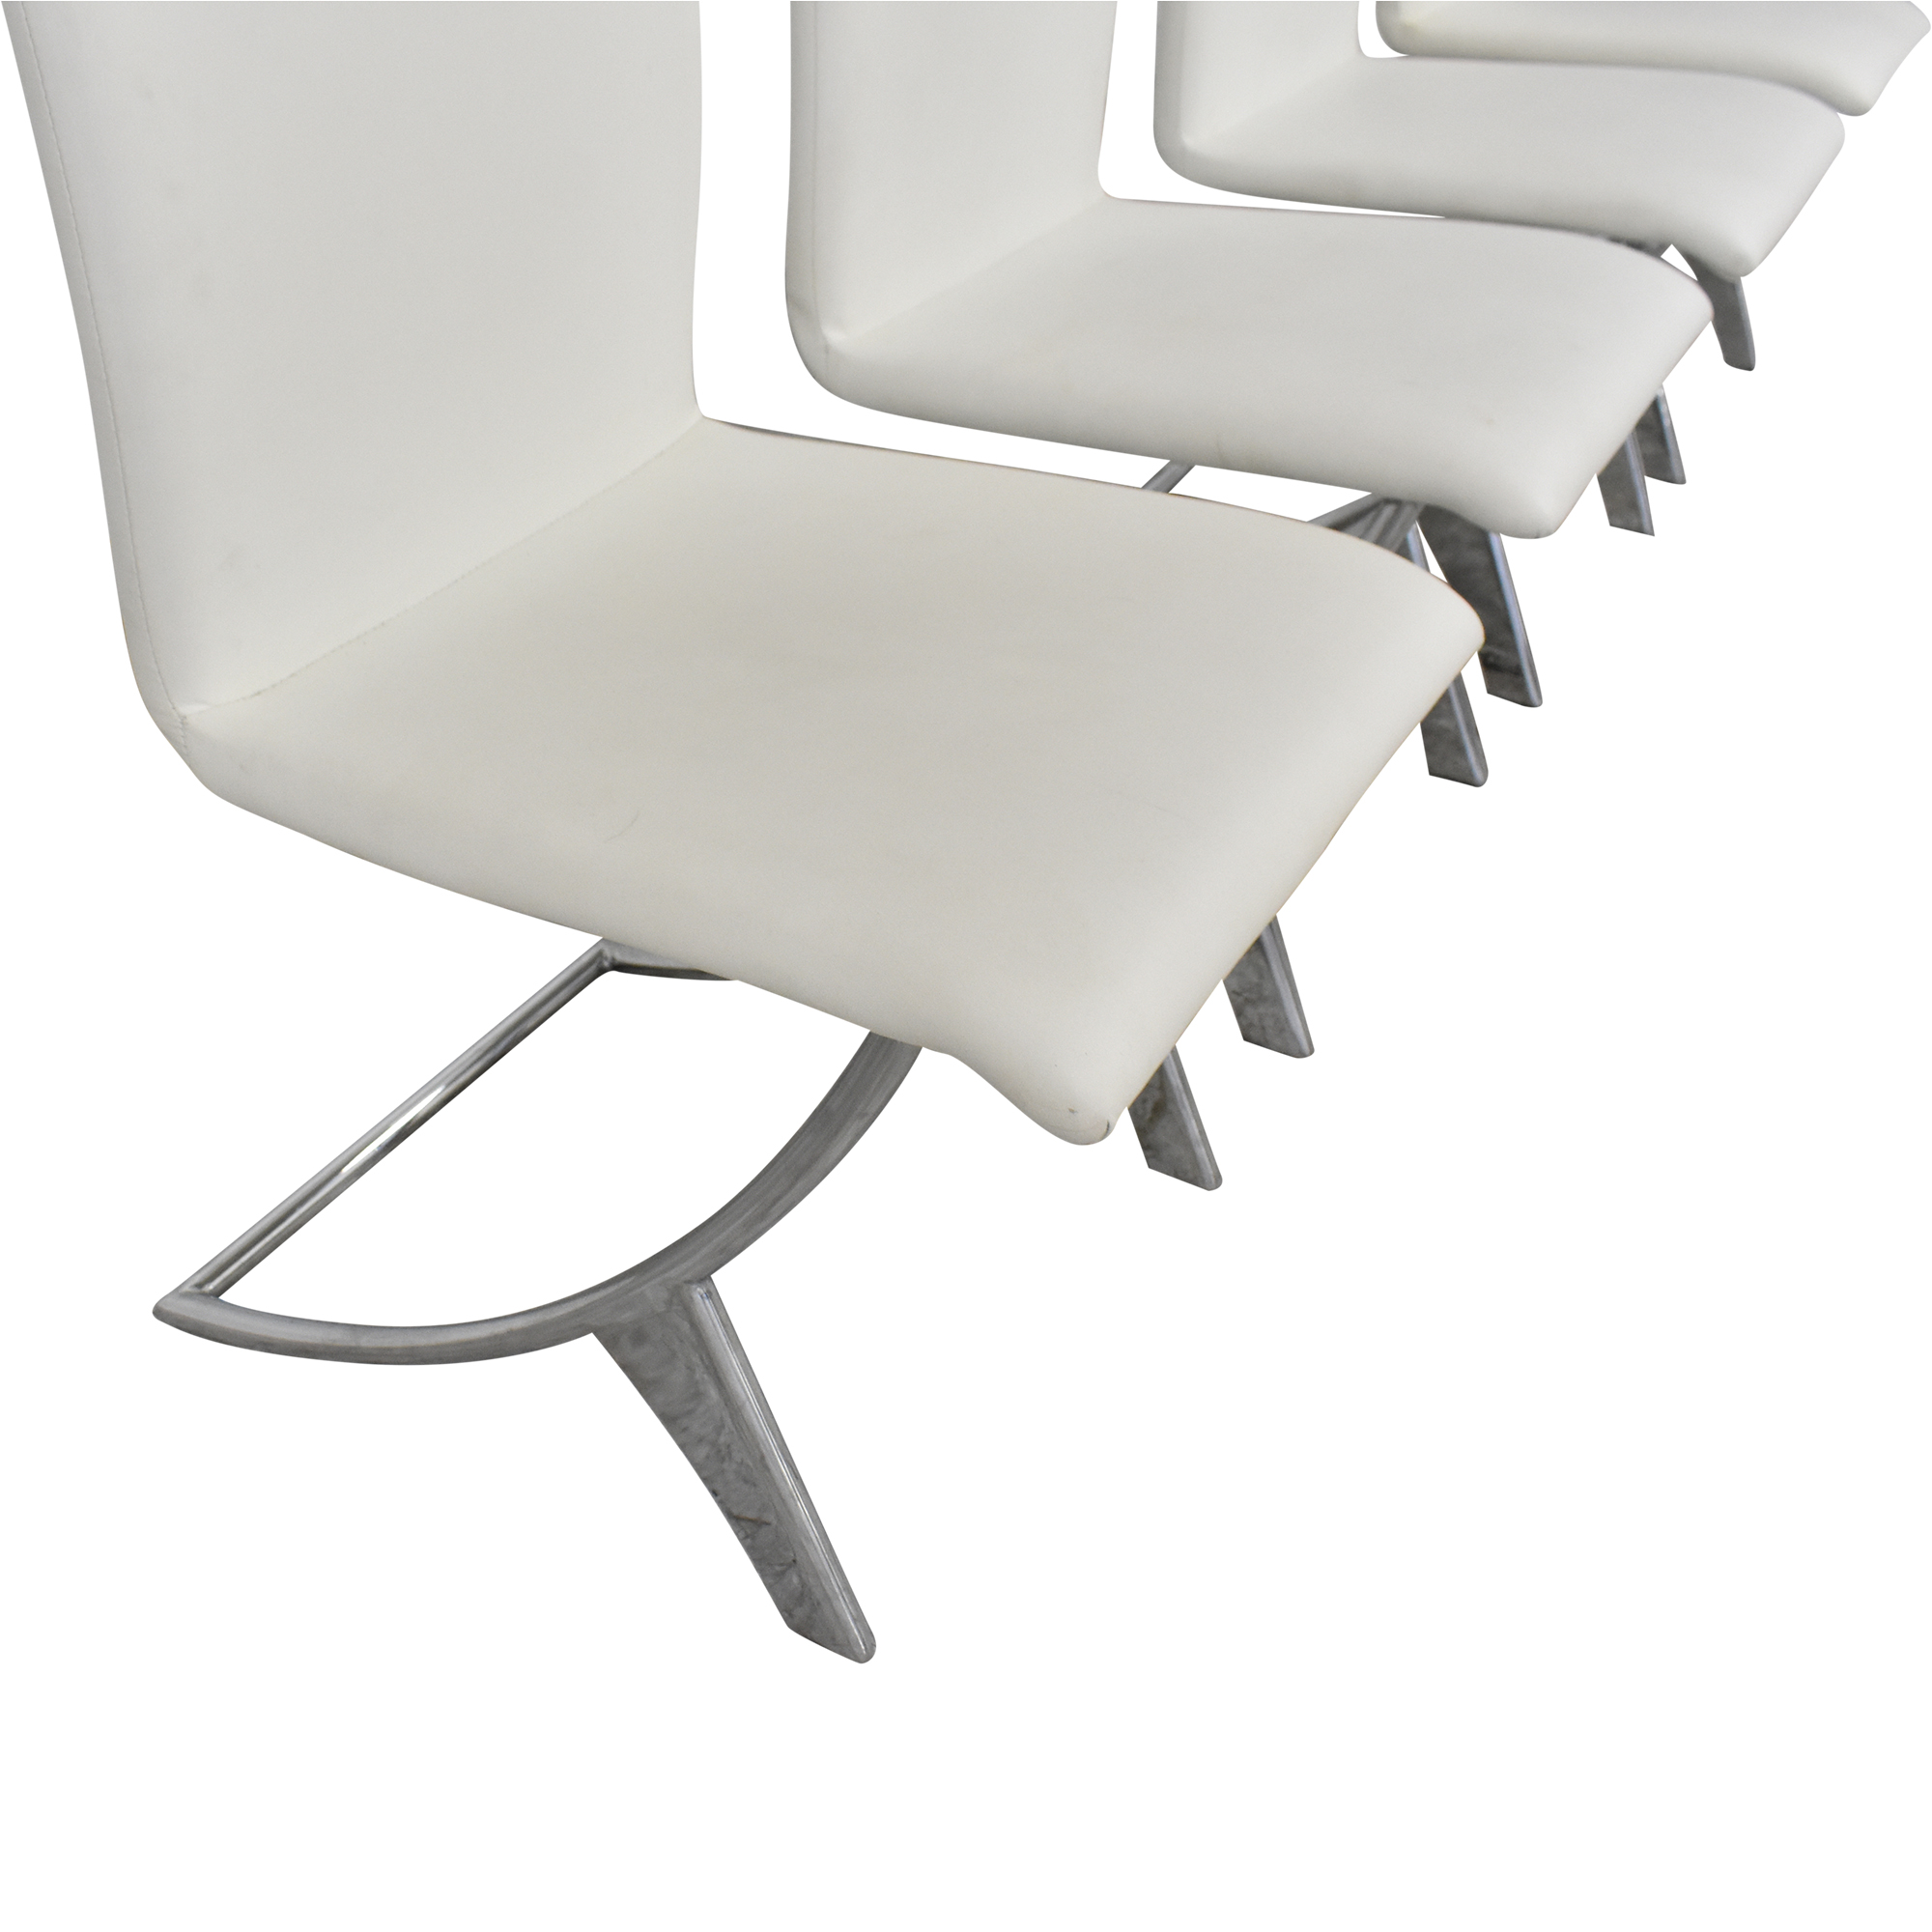 Zuo Modern Zuo Modern Drana Chairs for sale